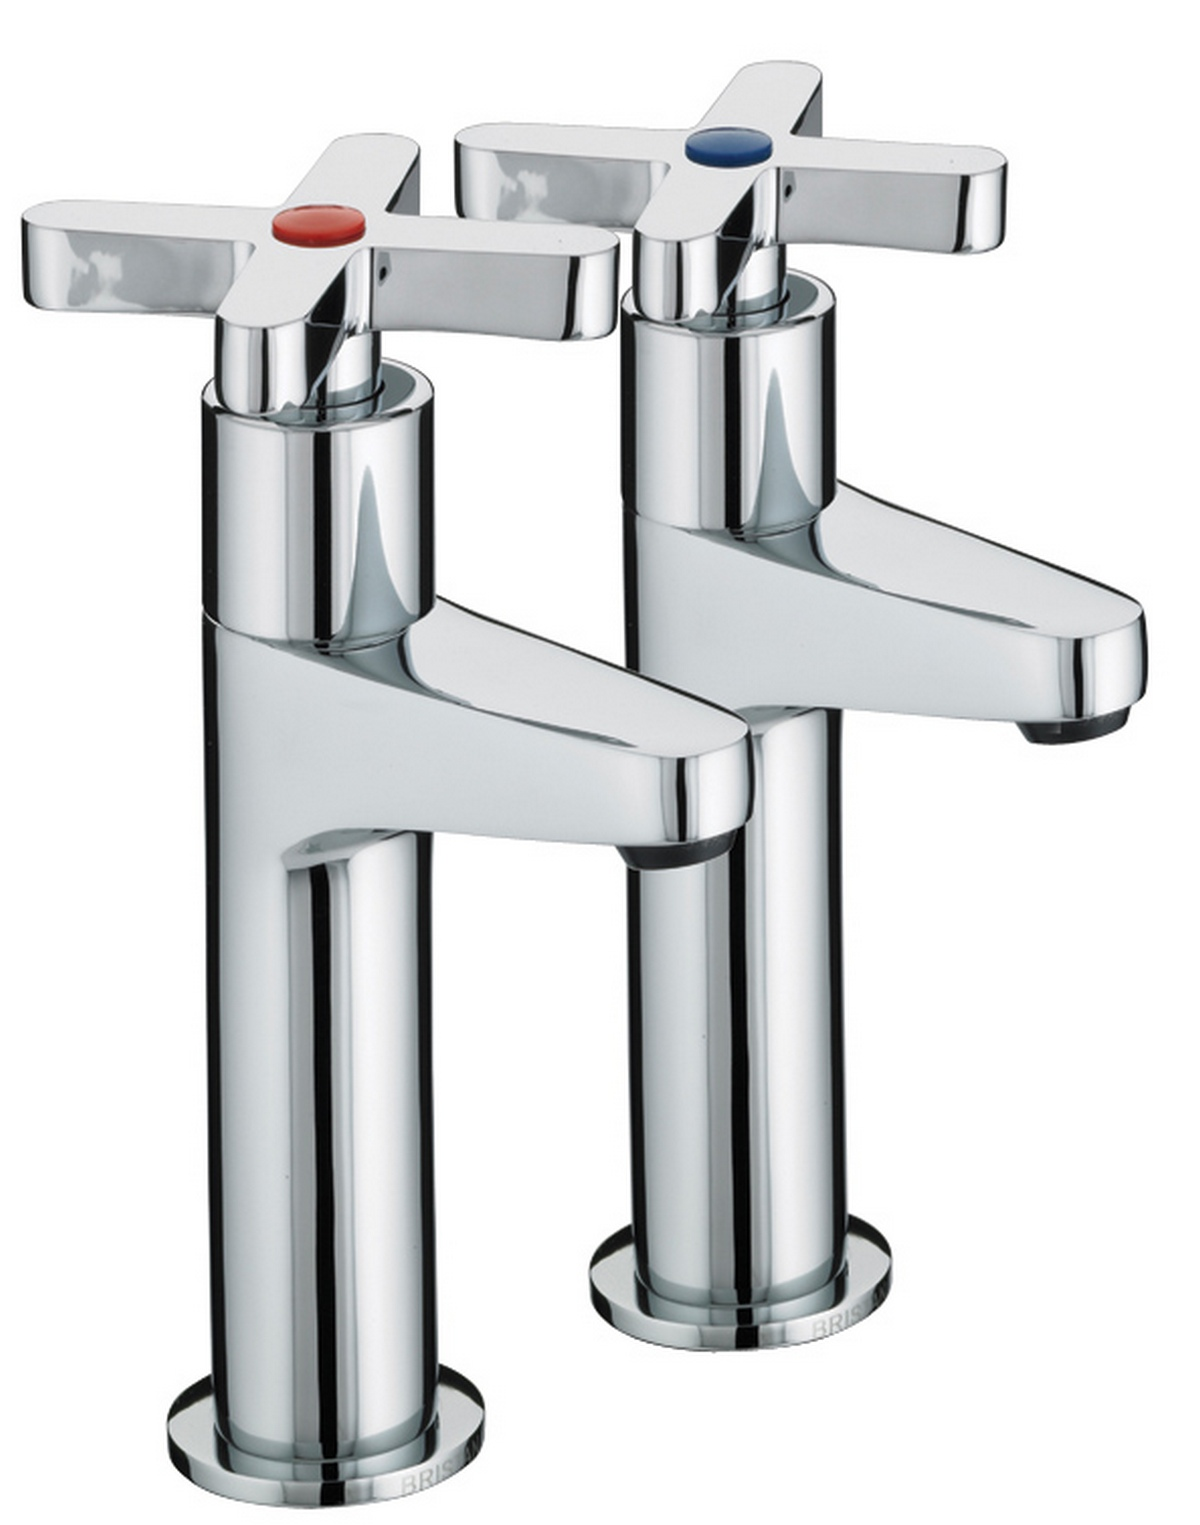 Bristan | Design Utility | DUX HNK C | Kitchen Taps